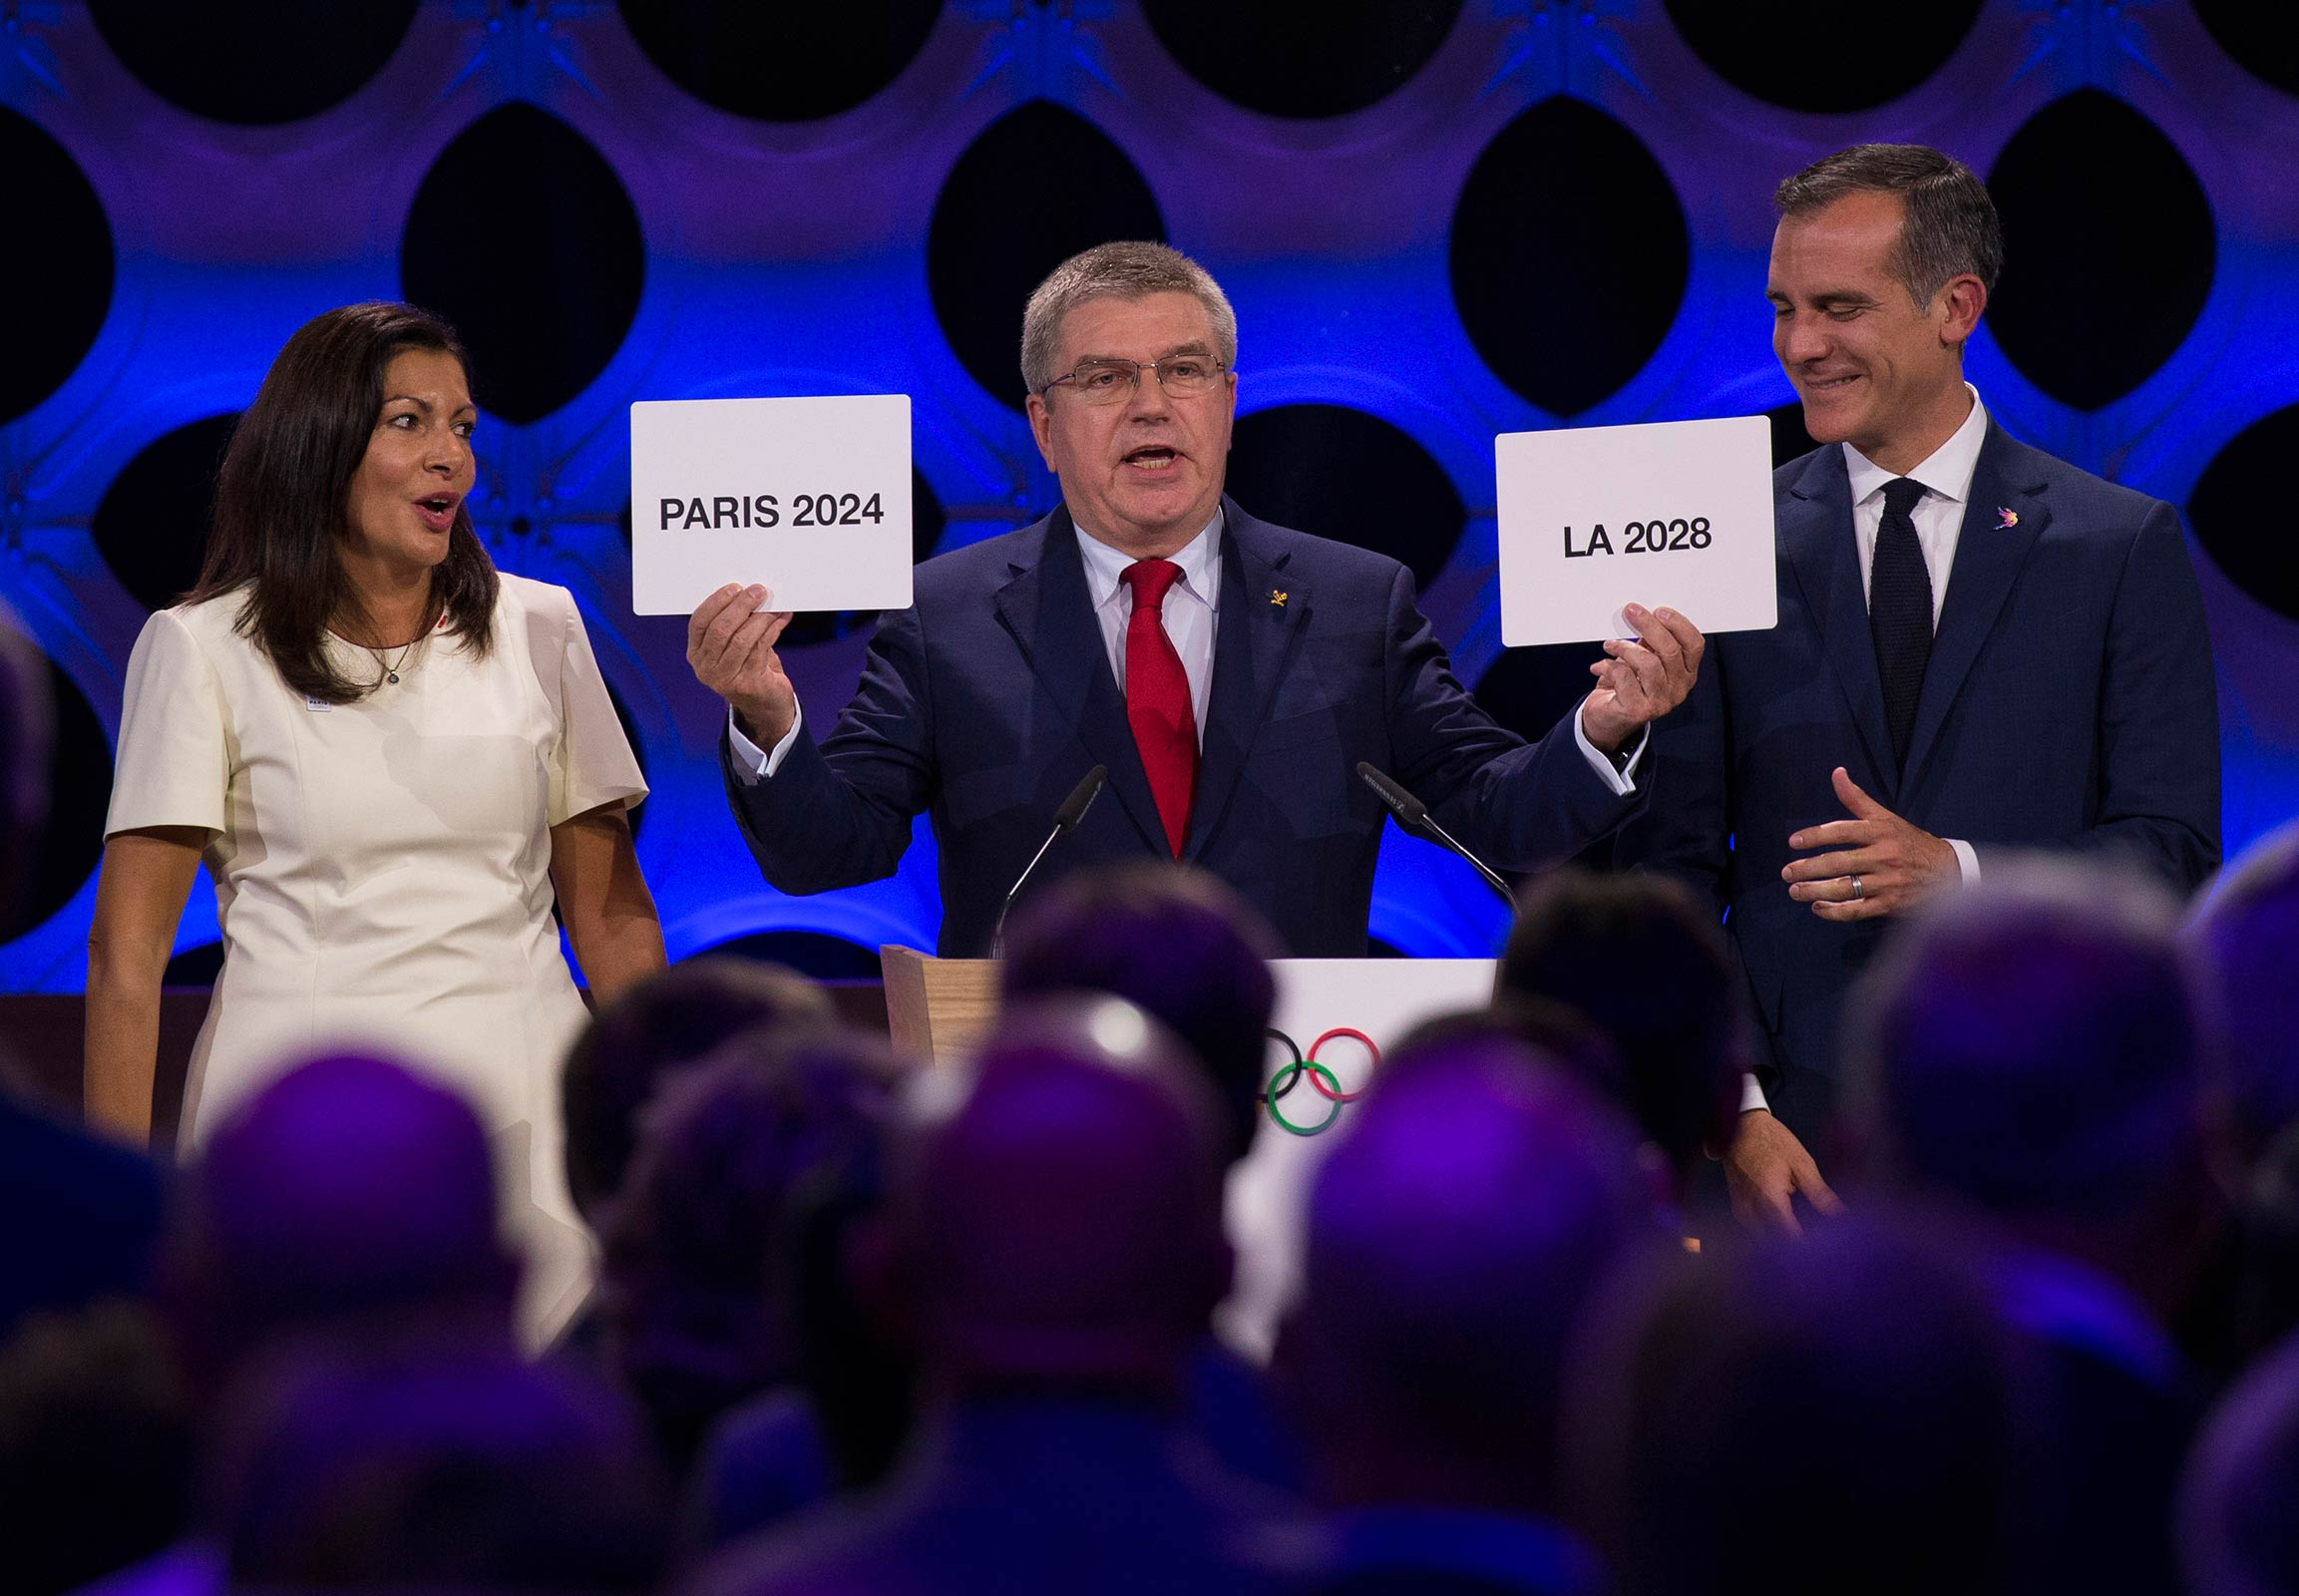 IOC Session in Lima - Mayor of Paris, Anne Hidalgo, IOC President Thomas Bach and Eric Garcetti, Mayor of Los Angeles celebrate the attribution of the Olympic Games 2024 to Paris and 2028 to Los Angeles.